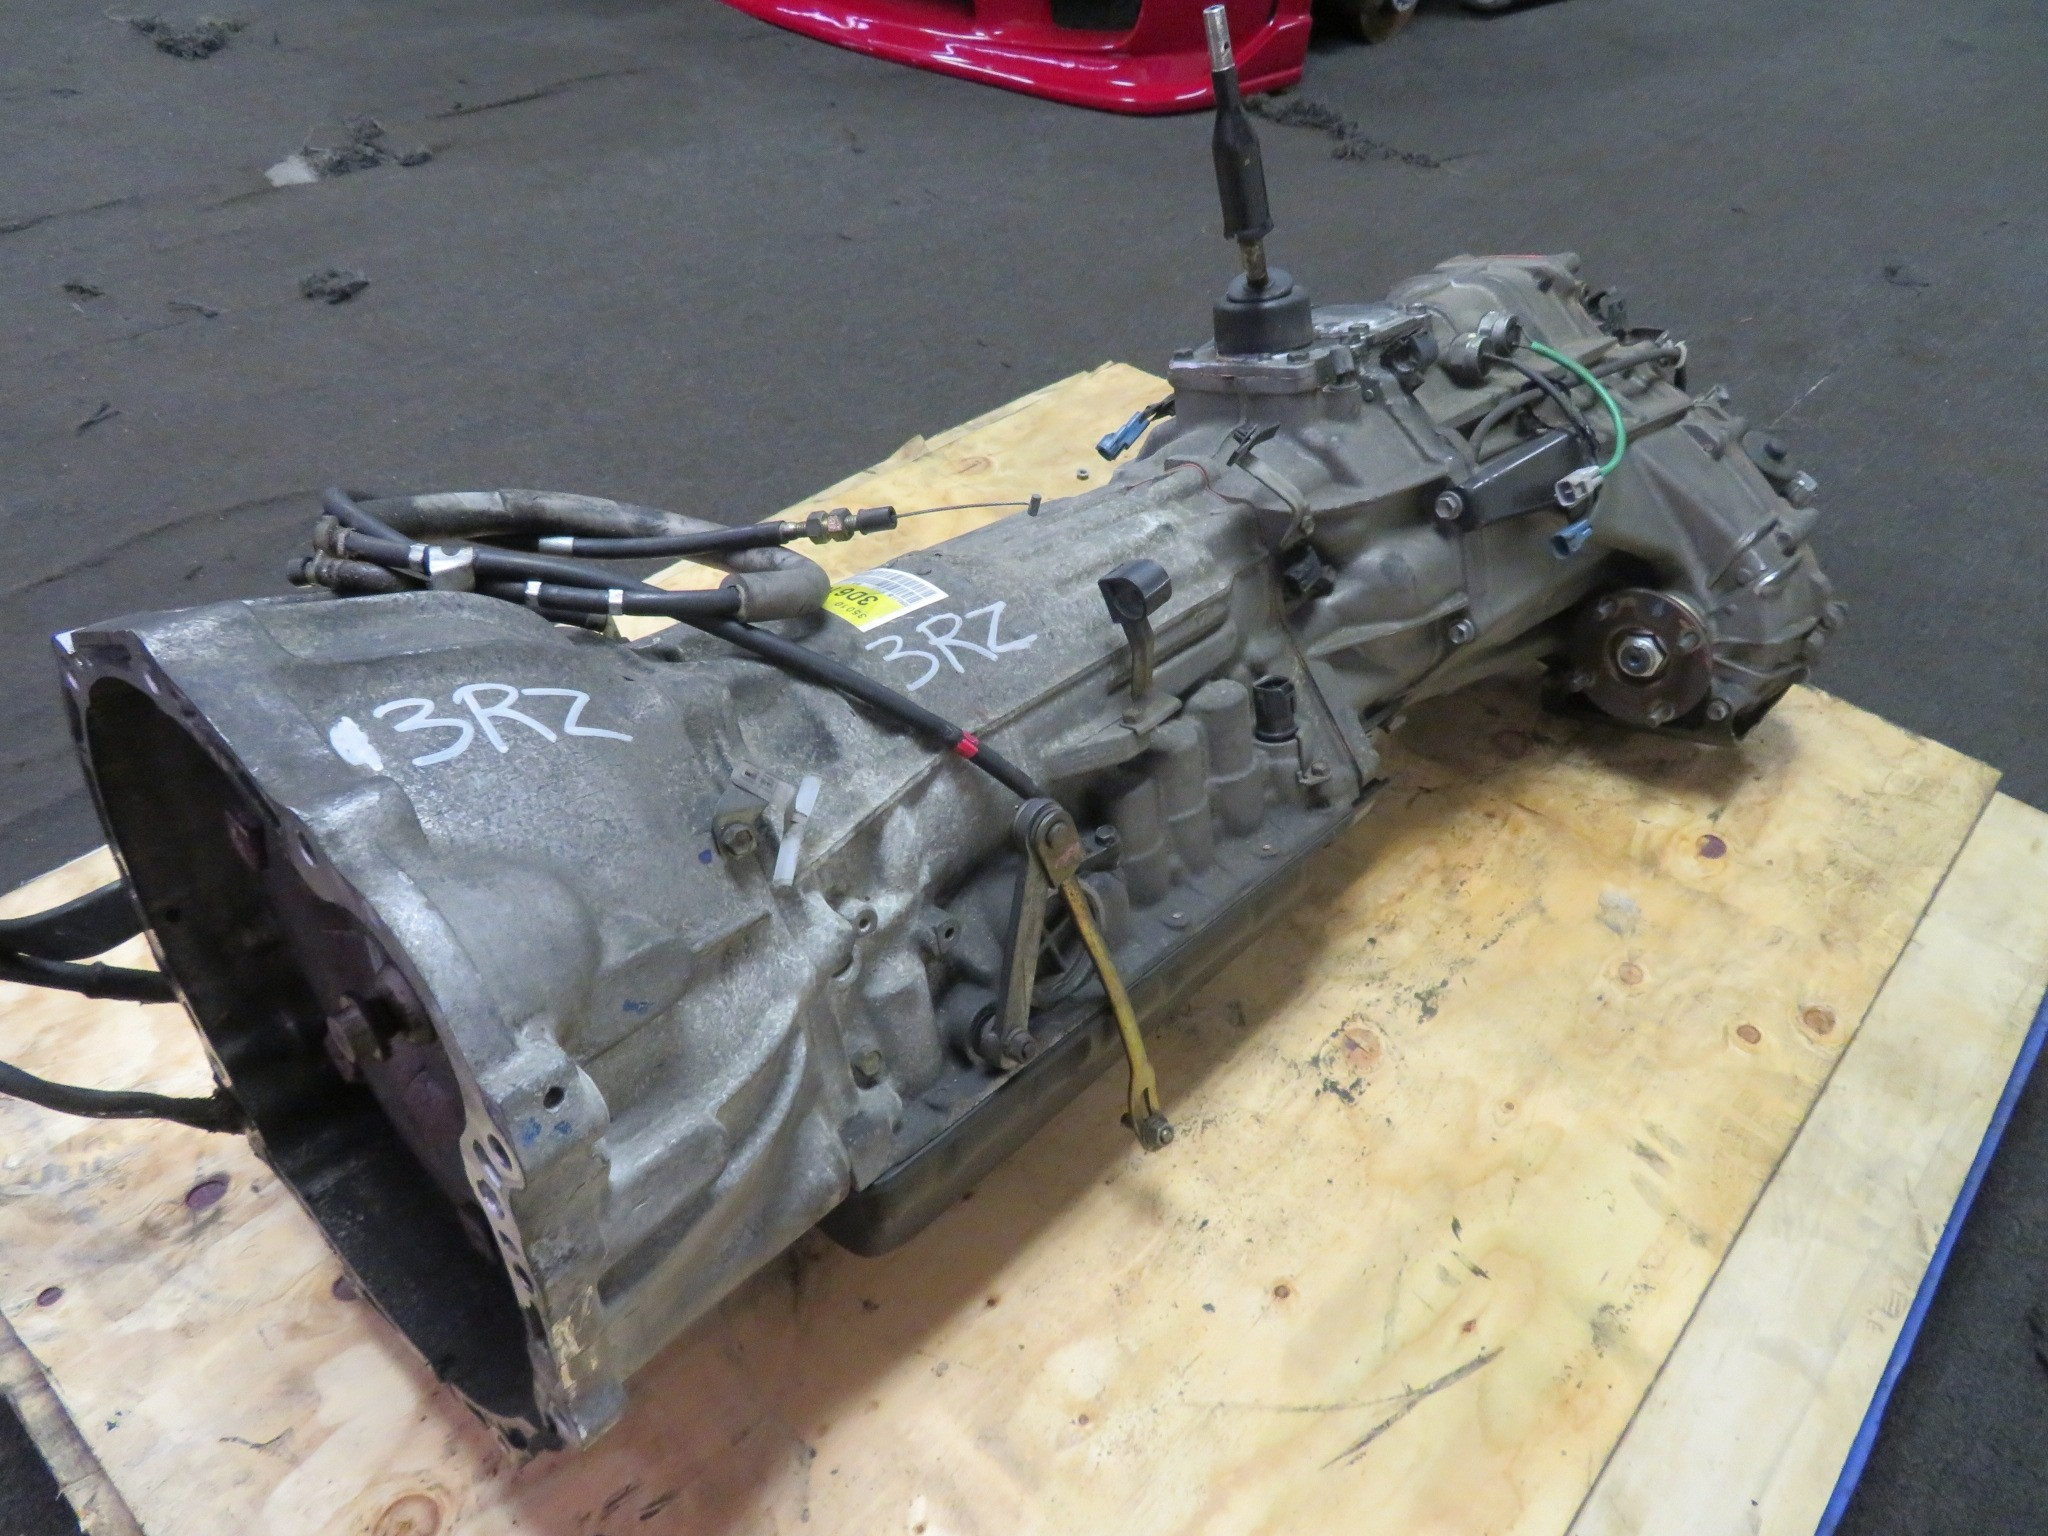 97-03 TOYOTA 4RUNNER TACOMA 3RZ-FE 2.7L 4 CYL AUTOMATIC AWD TRANSMISSION